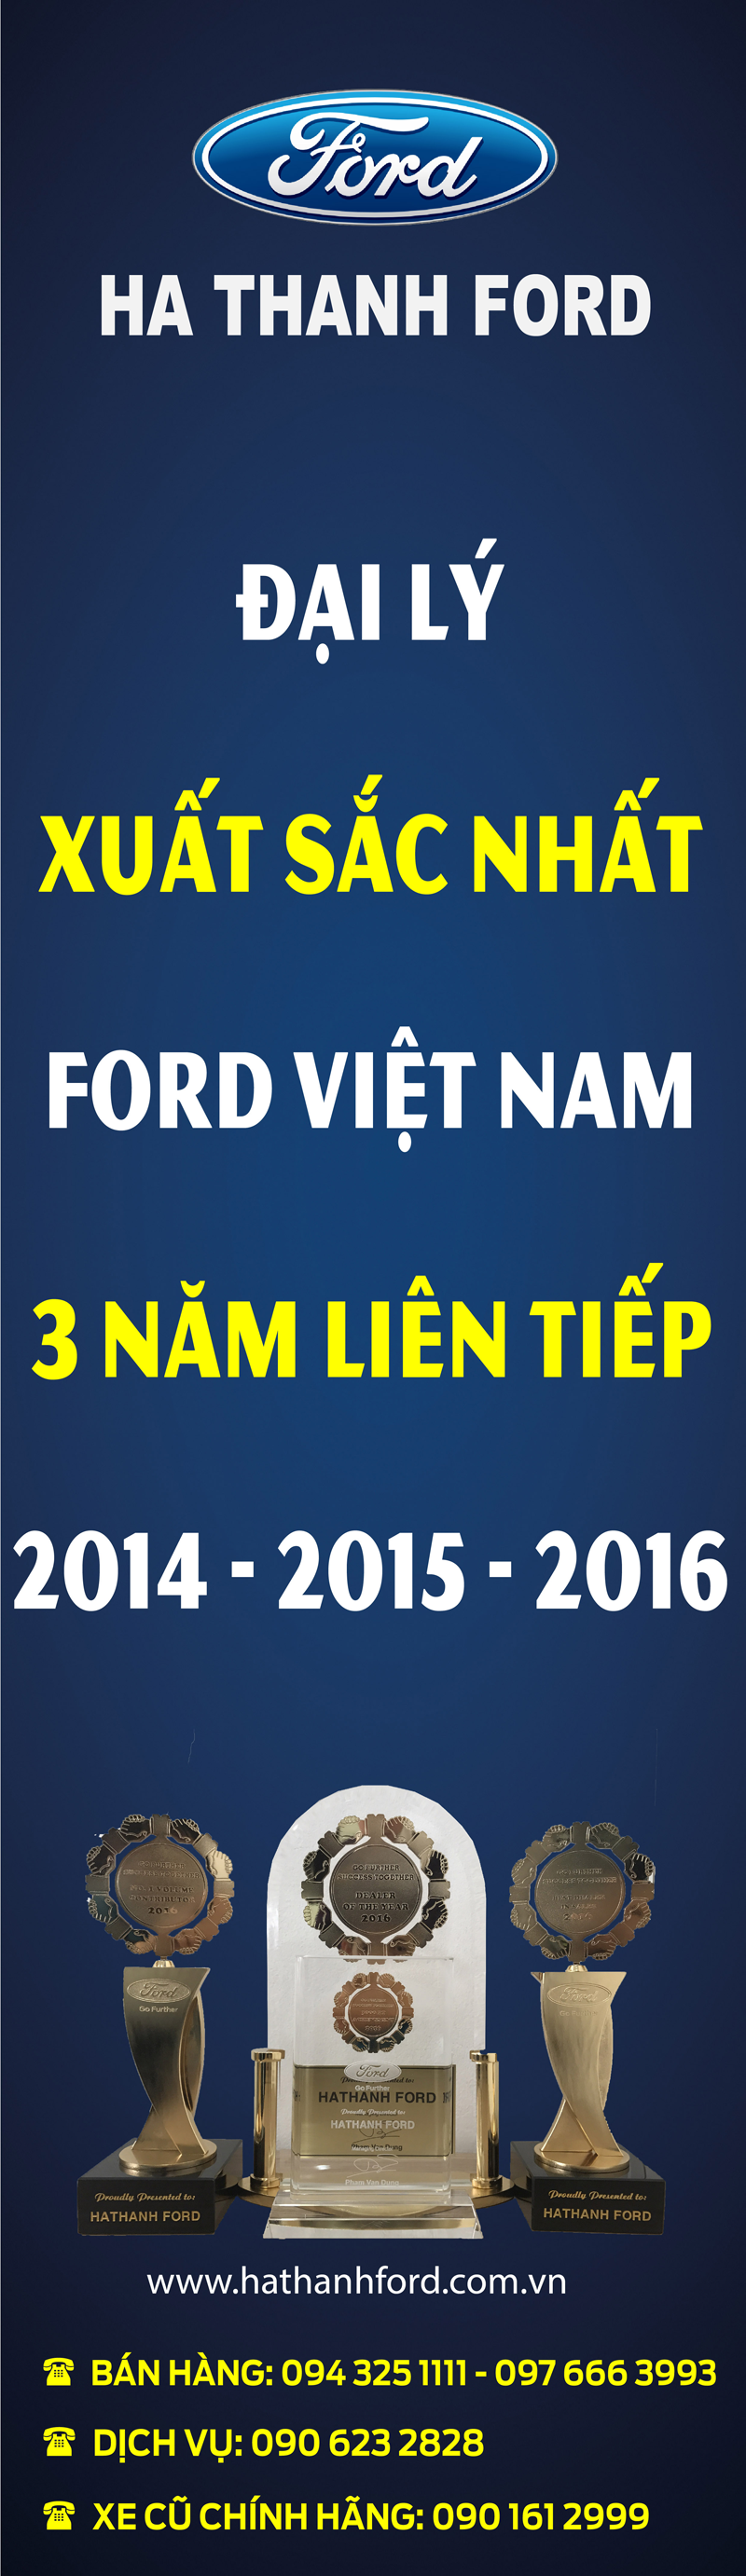 ha-thanh-ford-dai-ly-xuat-sac-nhat-ford-viet-nam-2016